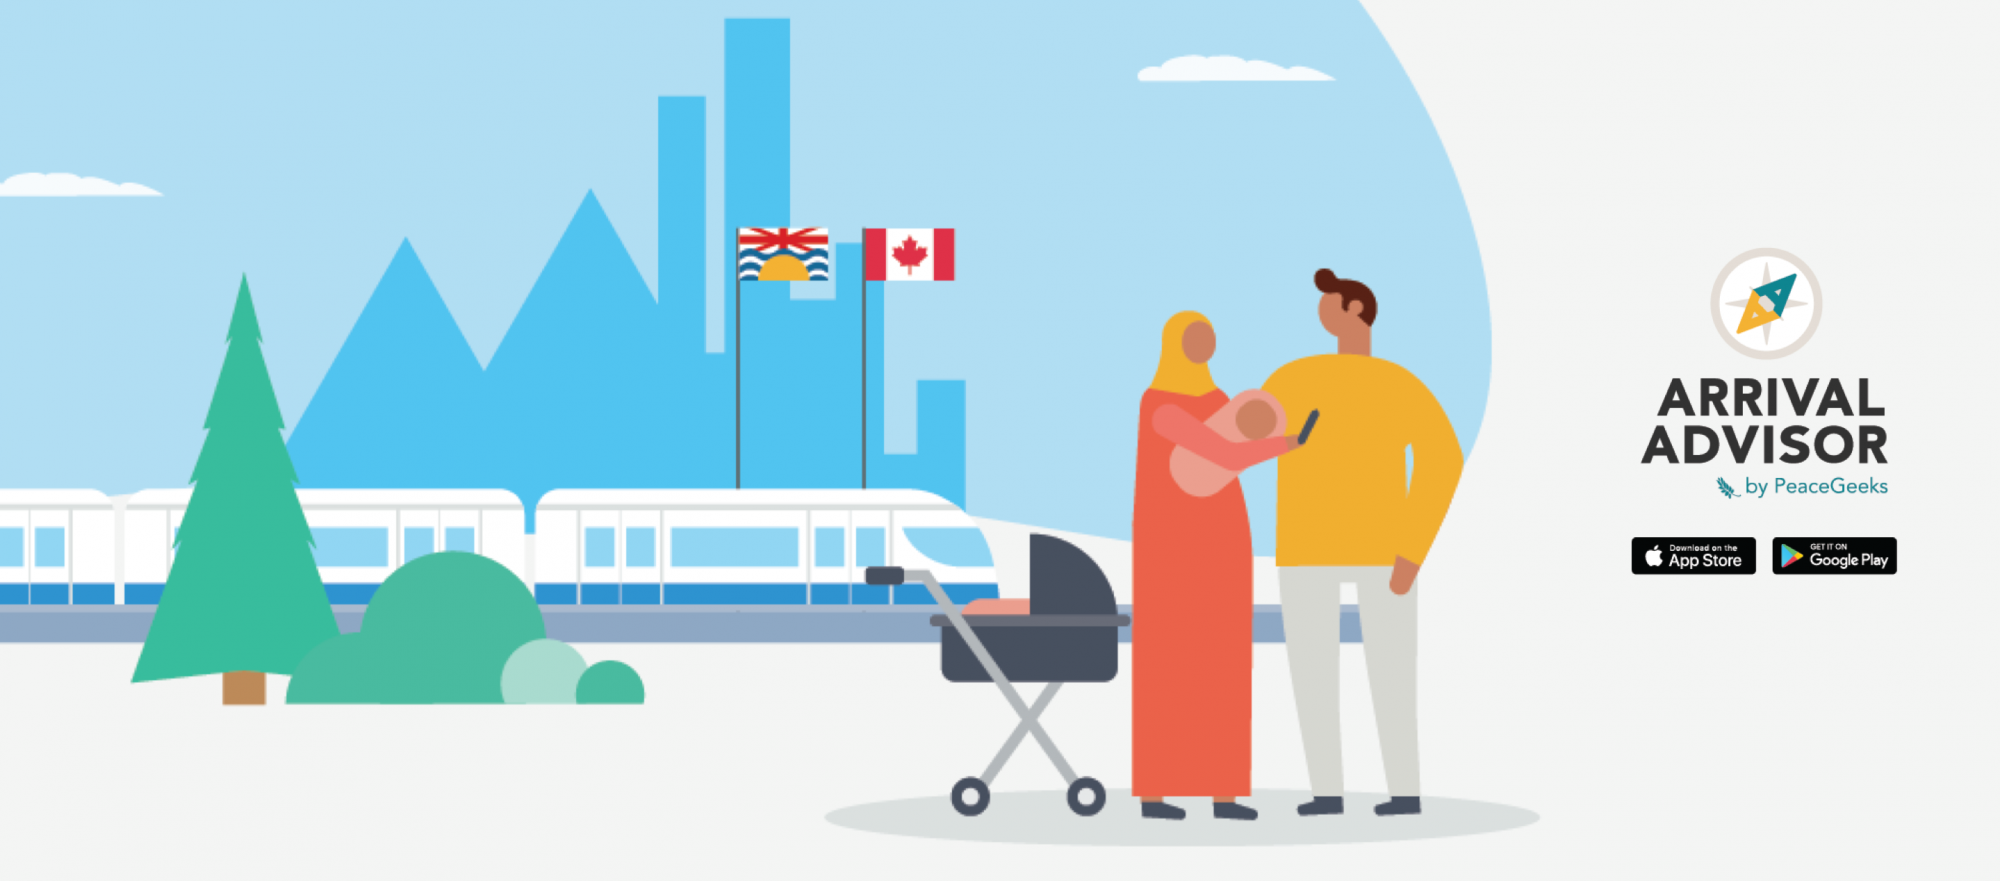 Illustration of immigrant couple using the Arrival Advisor app